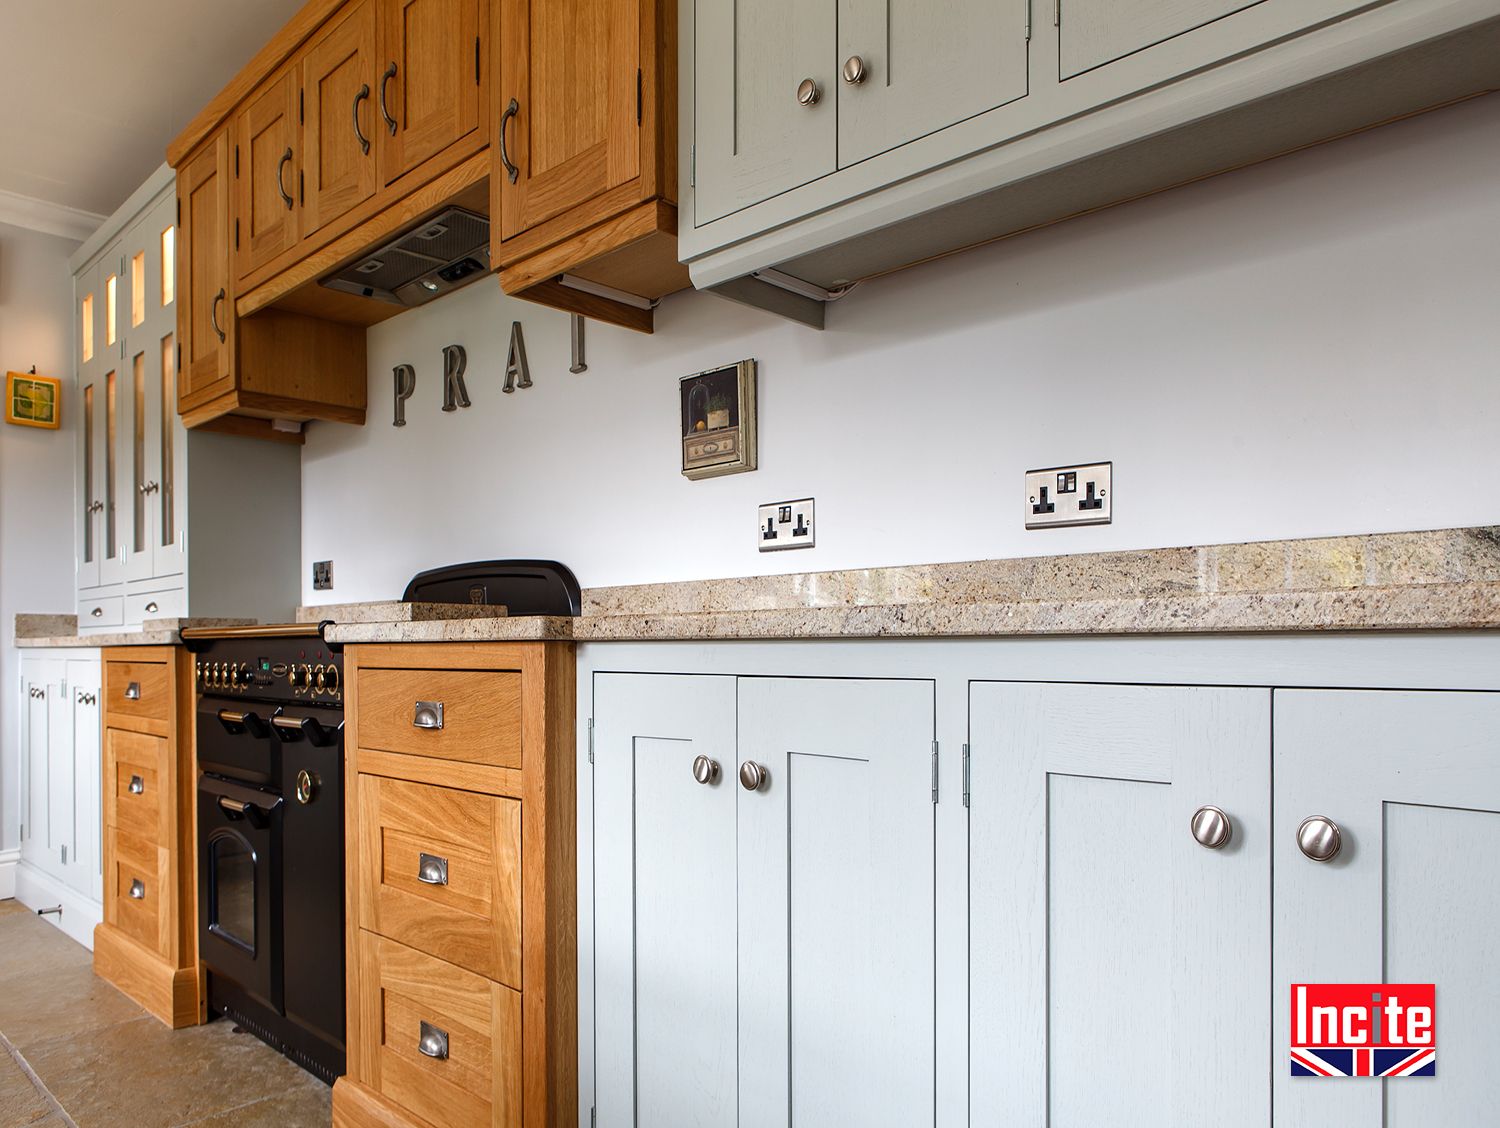 Incite Interiors British Made Kitchen Furniture for your home